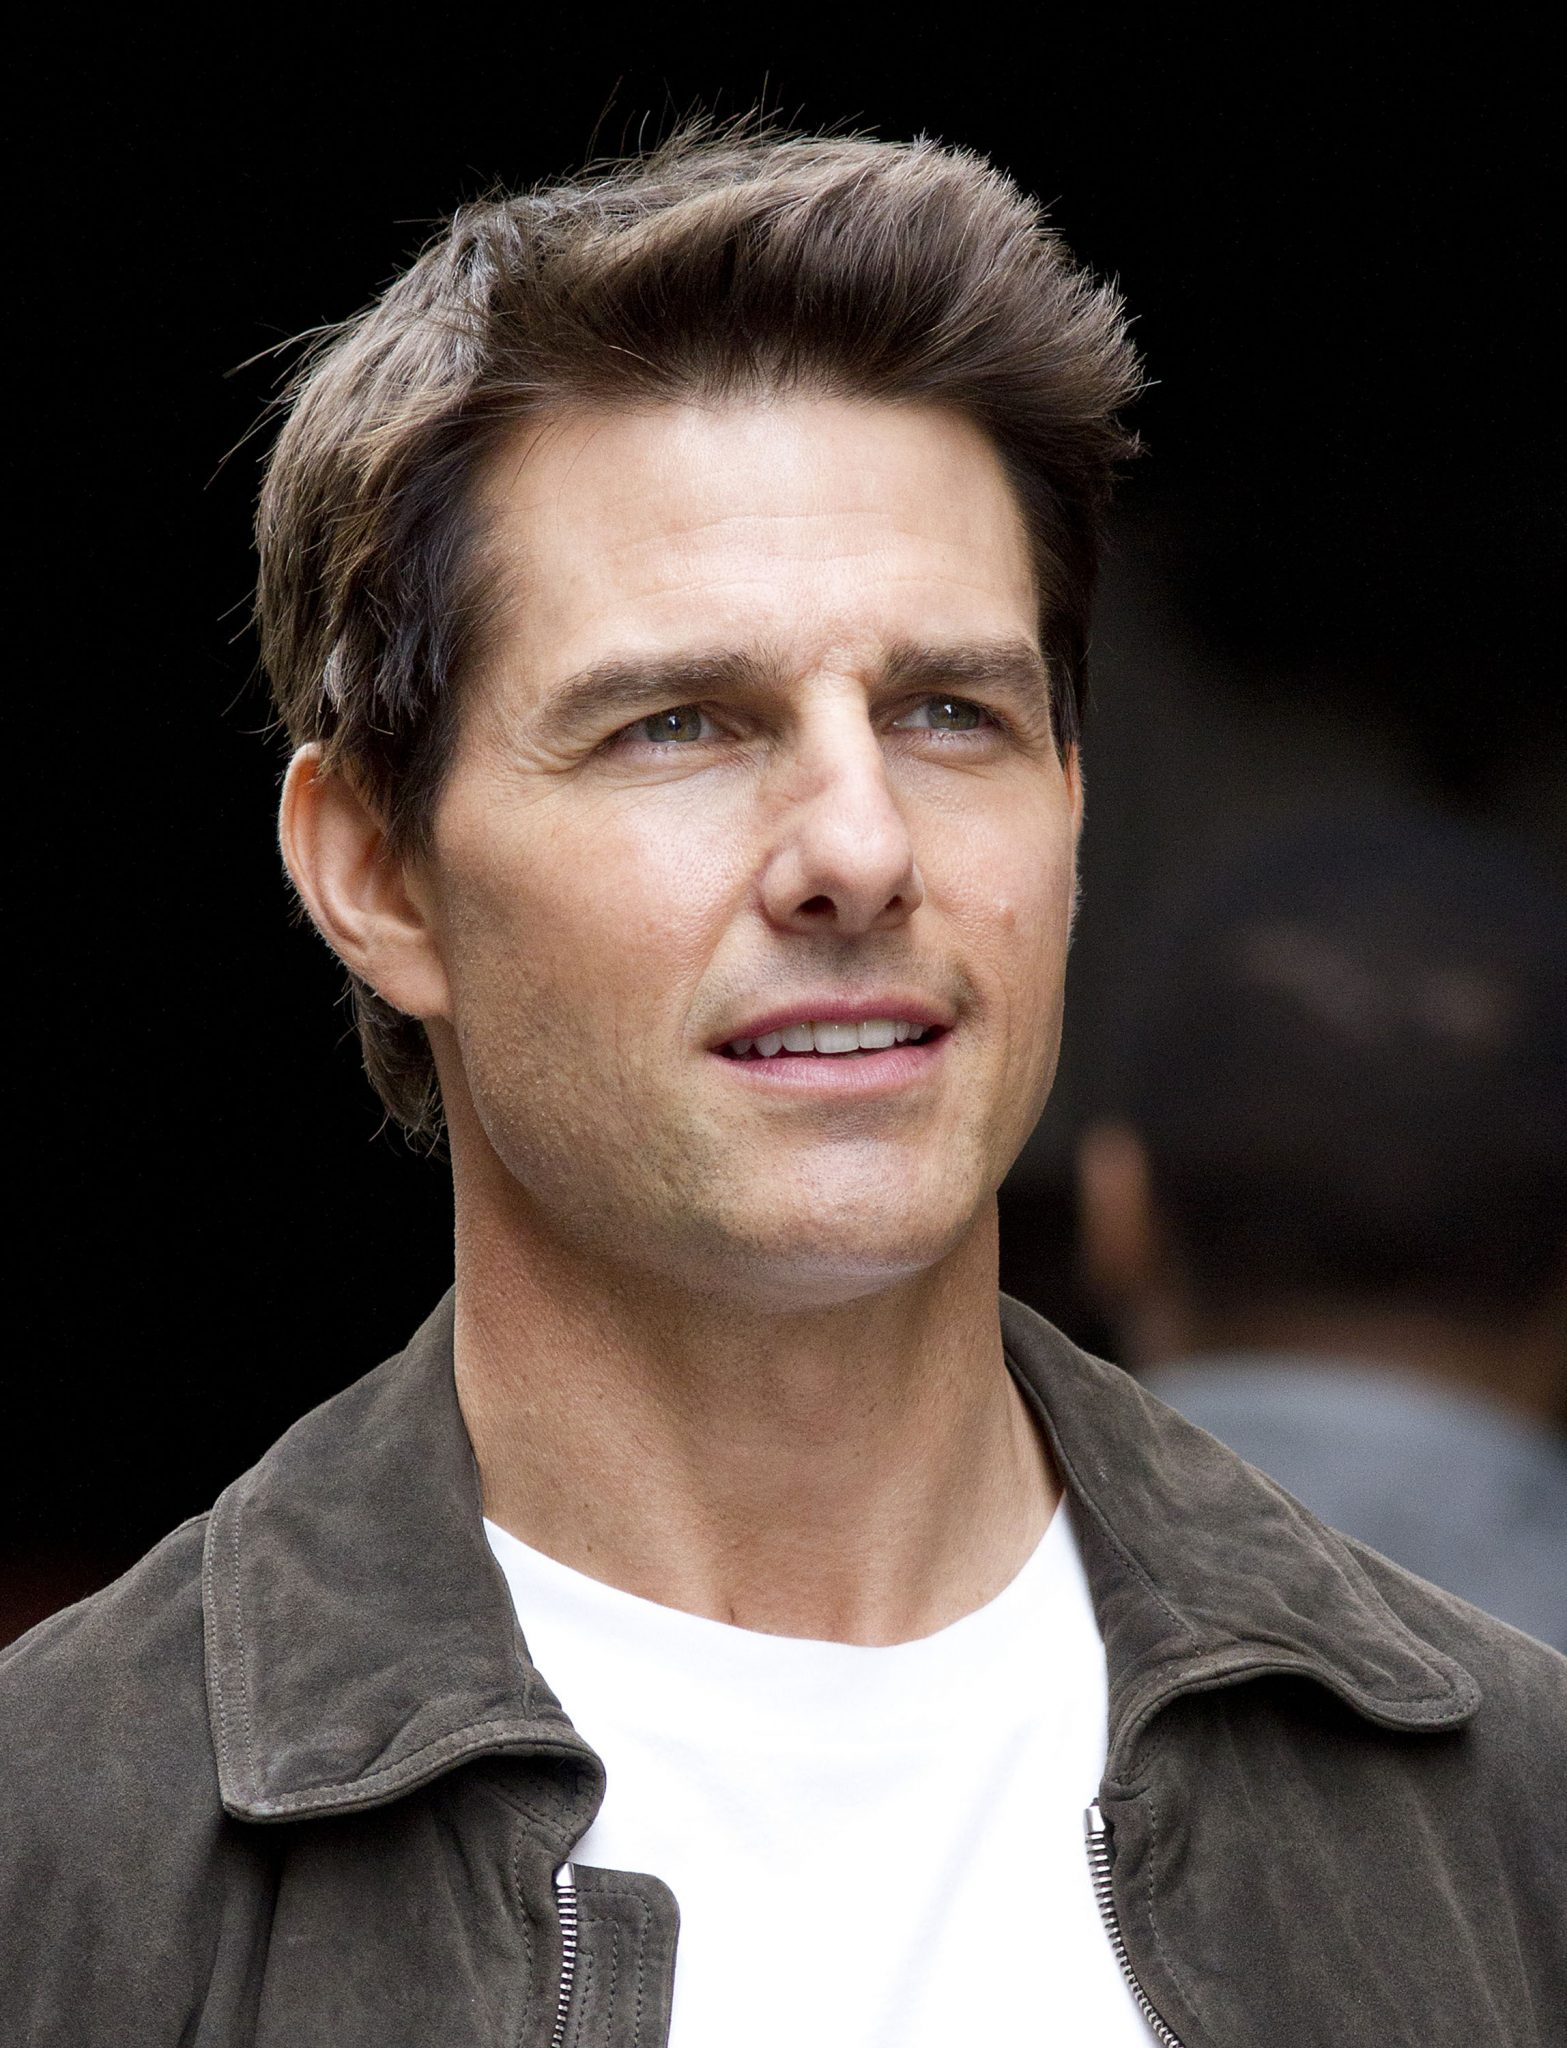 Tom Cruise Oblivion Hair Tom Cruise Oblivion Hair Tom